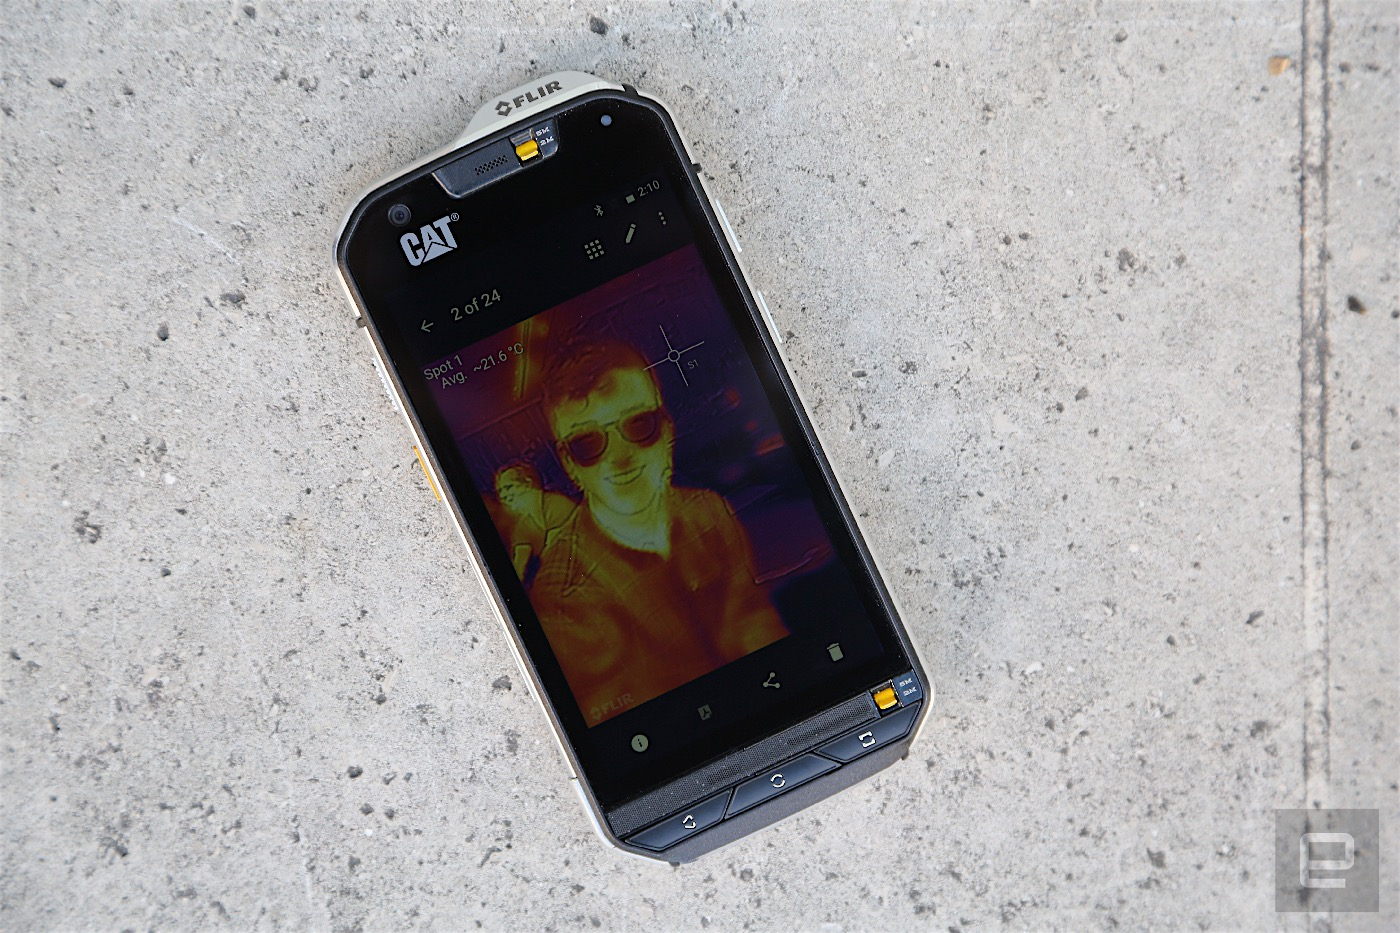 Cat's S60 is a rugged phone with a thermal camera